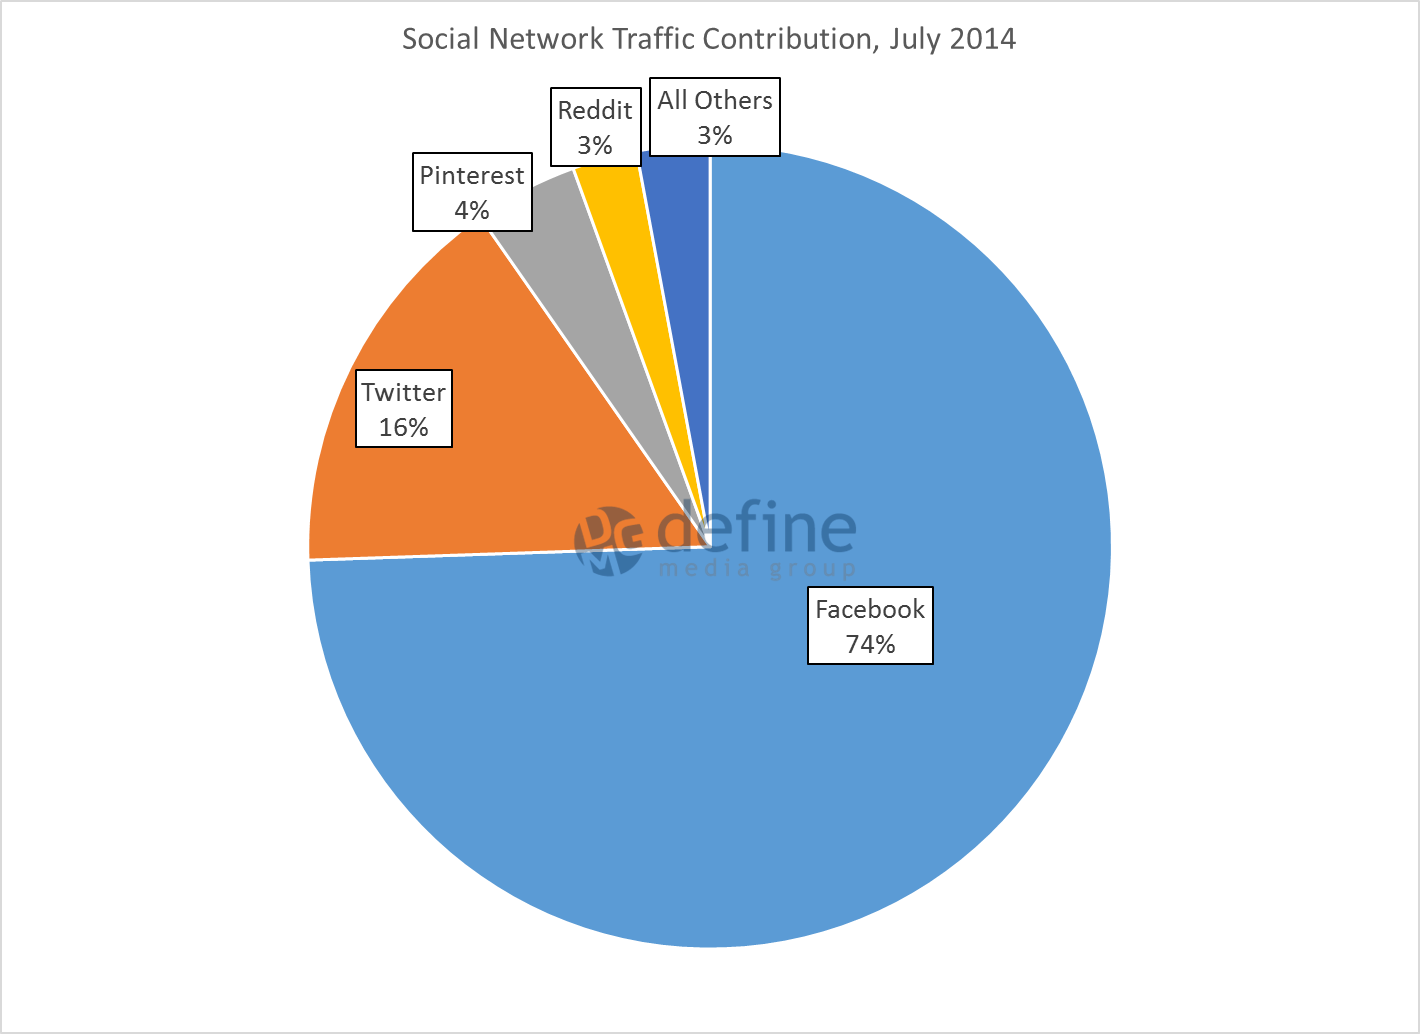 fb-7-social-network-contribution-july-14